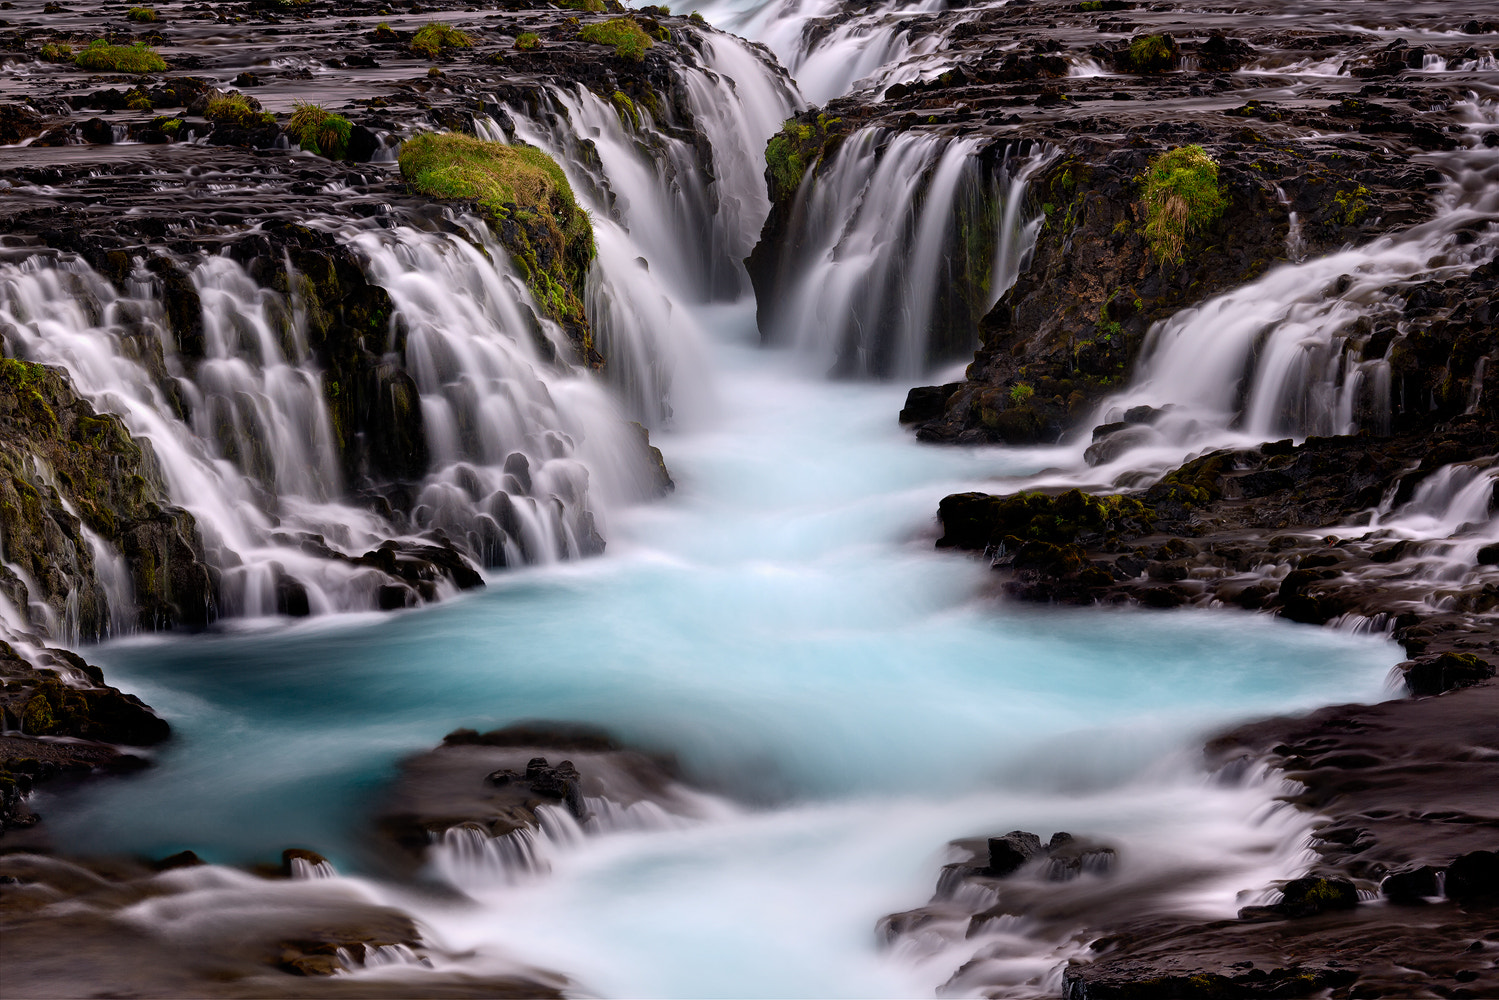 Photograph Bruarfoss by James Newkirk on 500px